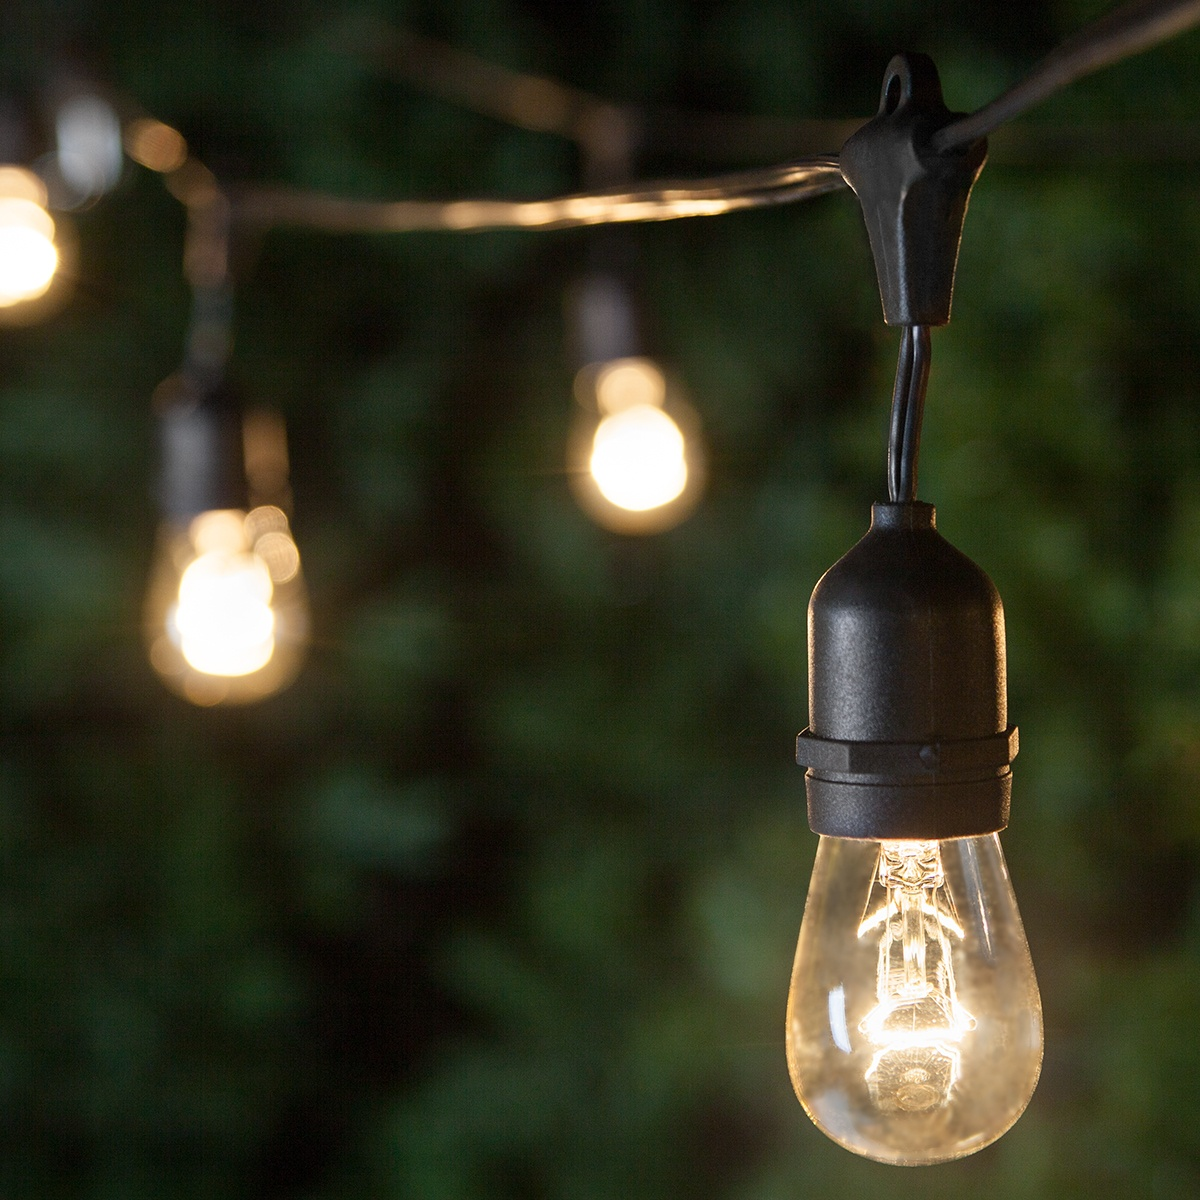 Bon 54u0027 Commercial Patio String With 24 Suspended S14 Clear Outdoor Patio Lights